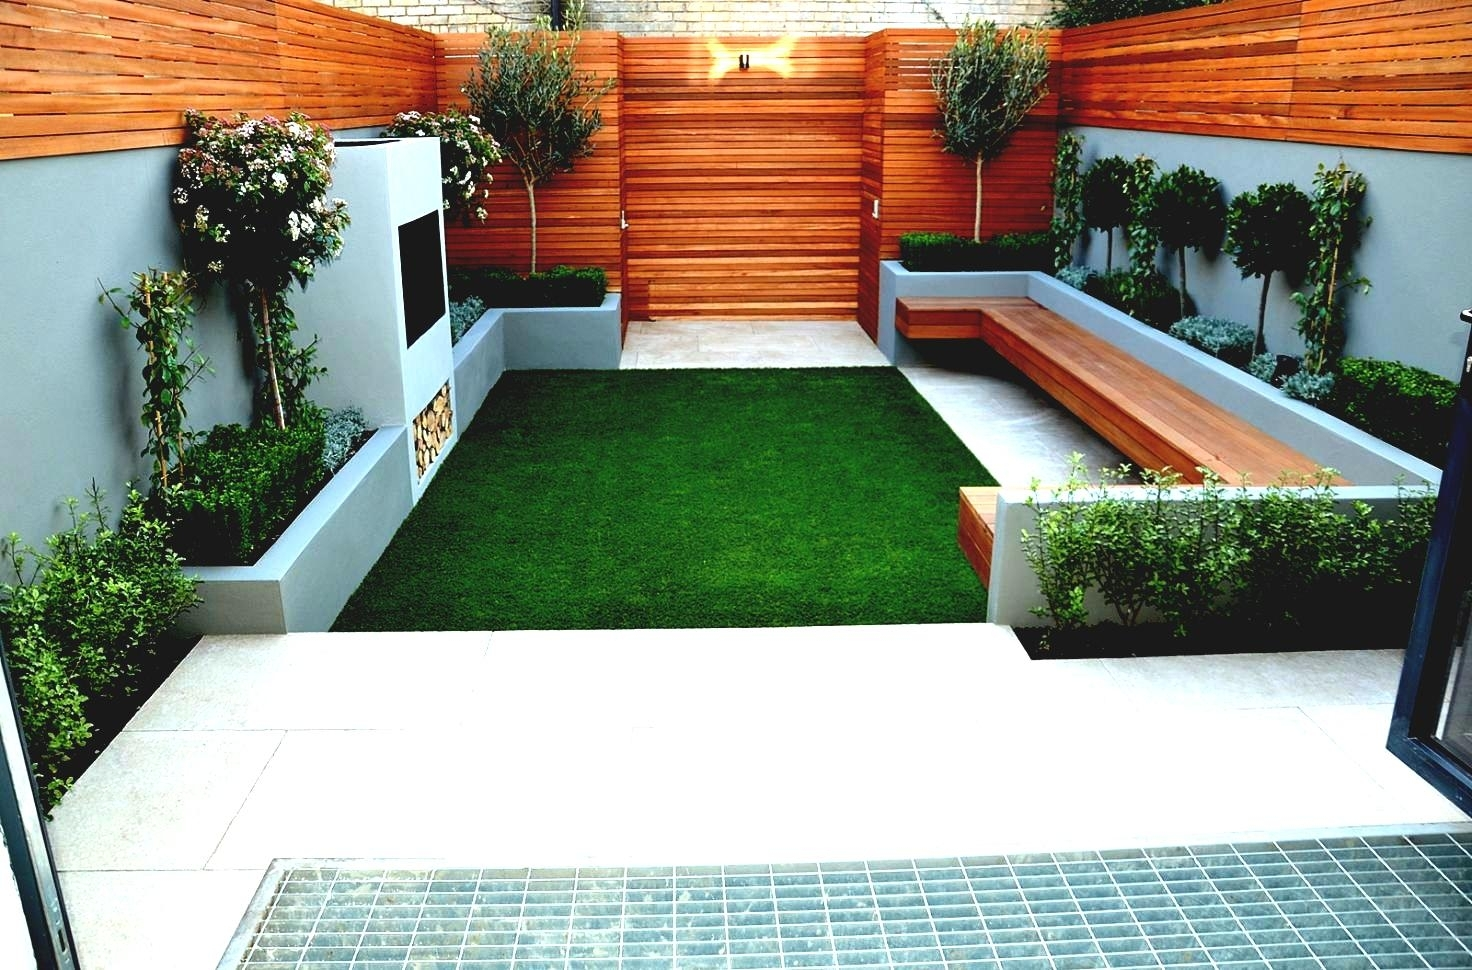 Paving ideas for small back gardens garden design for Small back garden designs